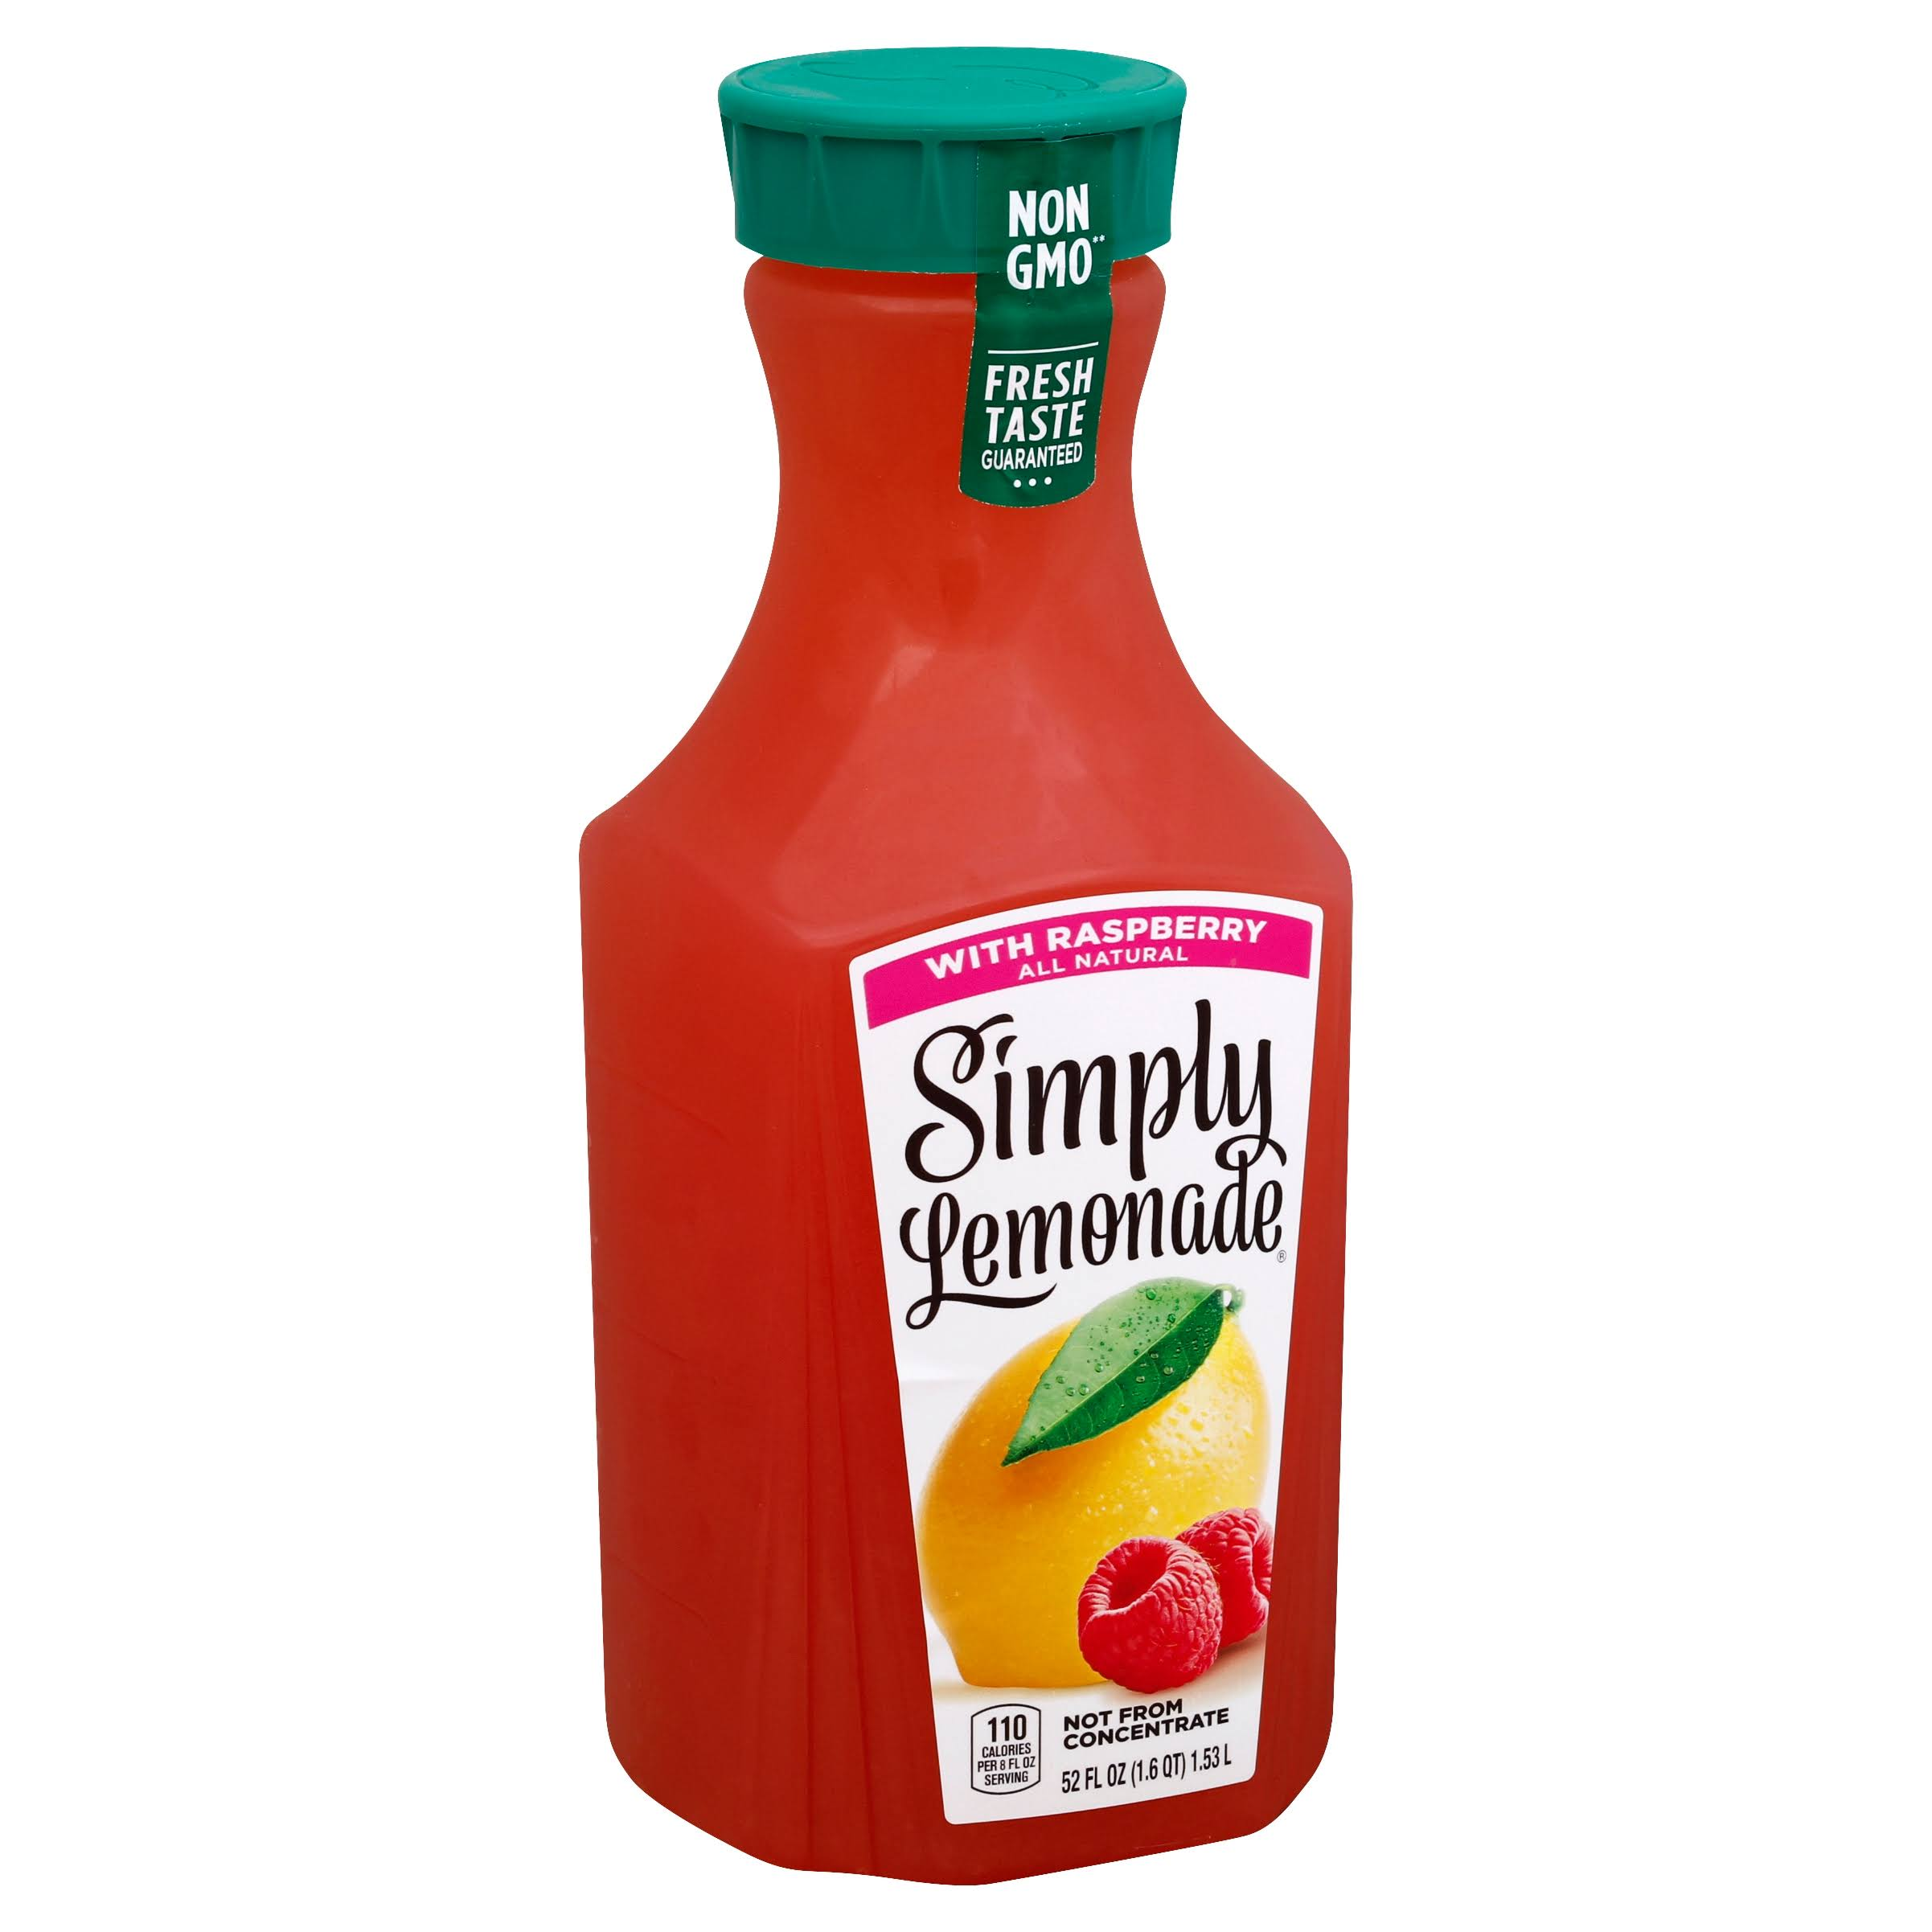 Simply Lemonade Lemonade, with Raspberry - 52 fl oz